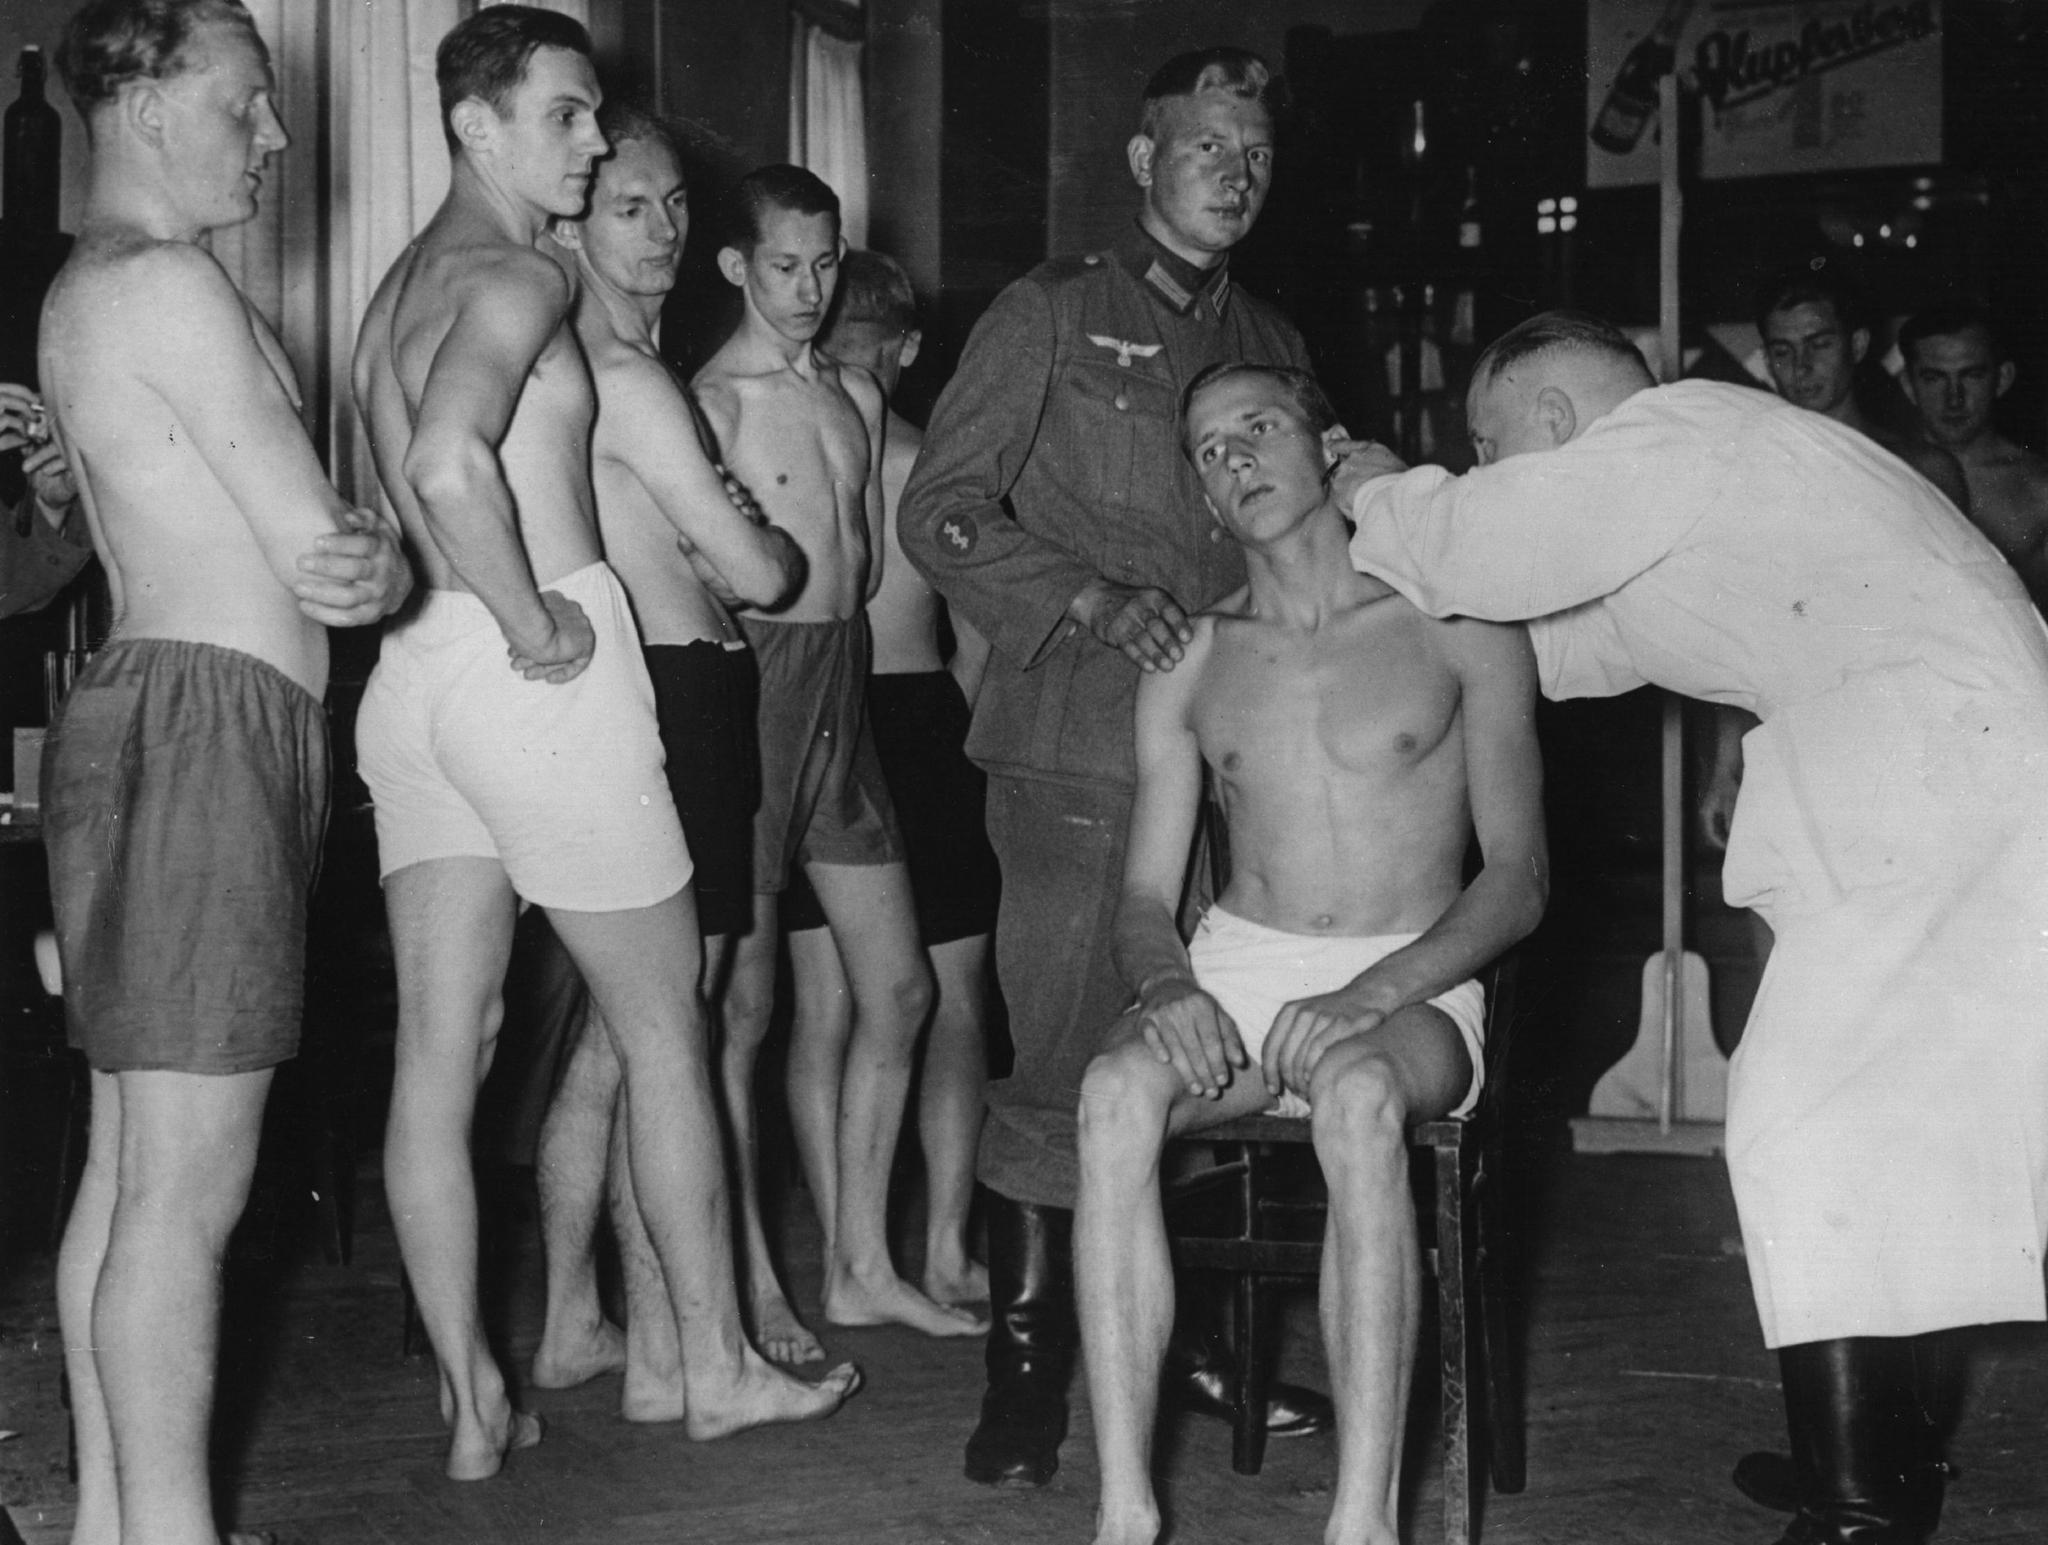 Young conscripted recruits undergo a medical examination in Berlin, Germany on June 22, 1937.